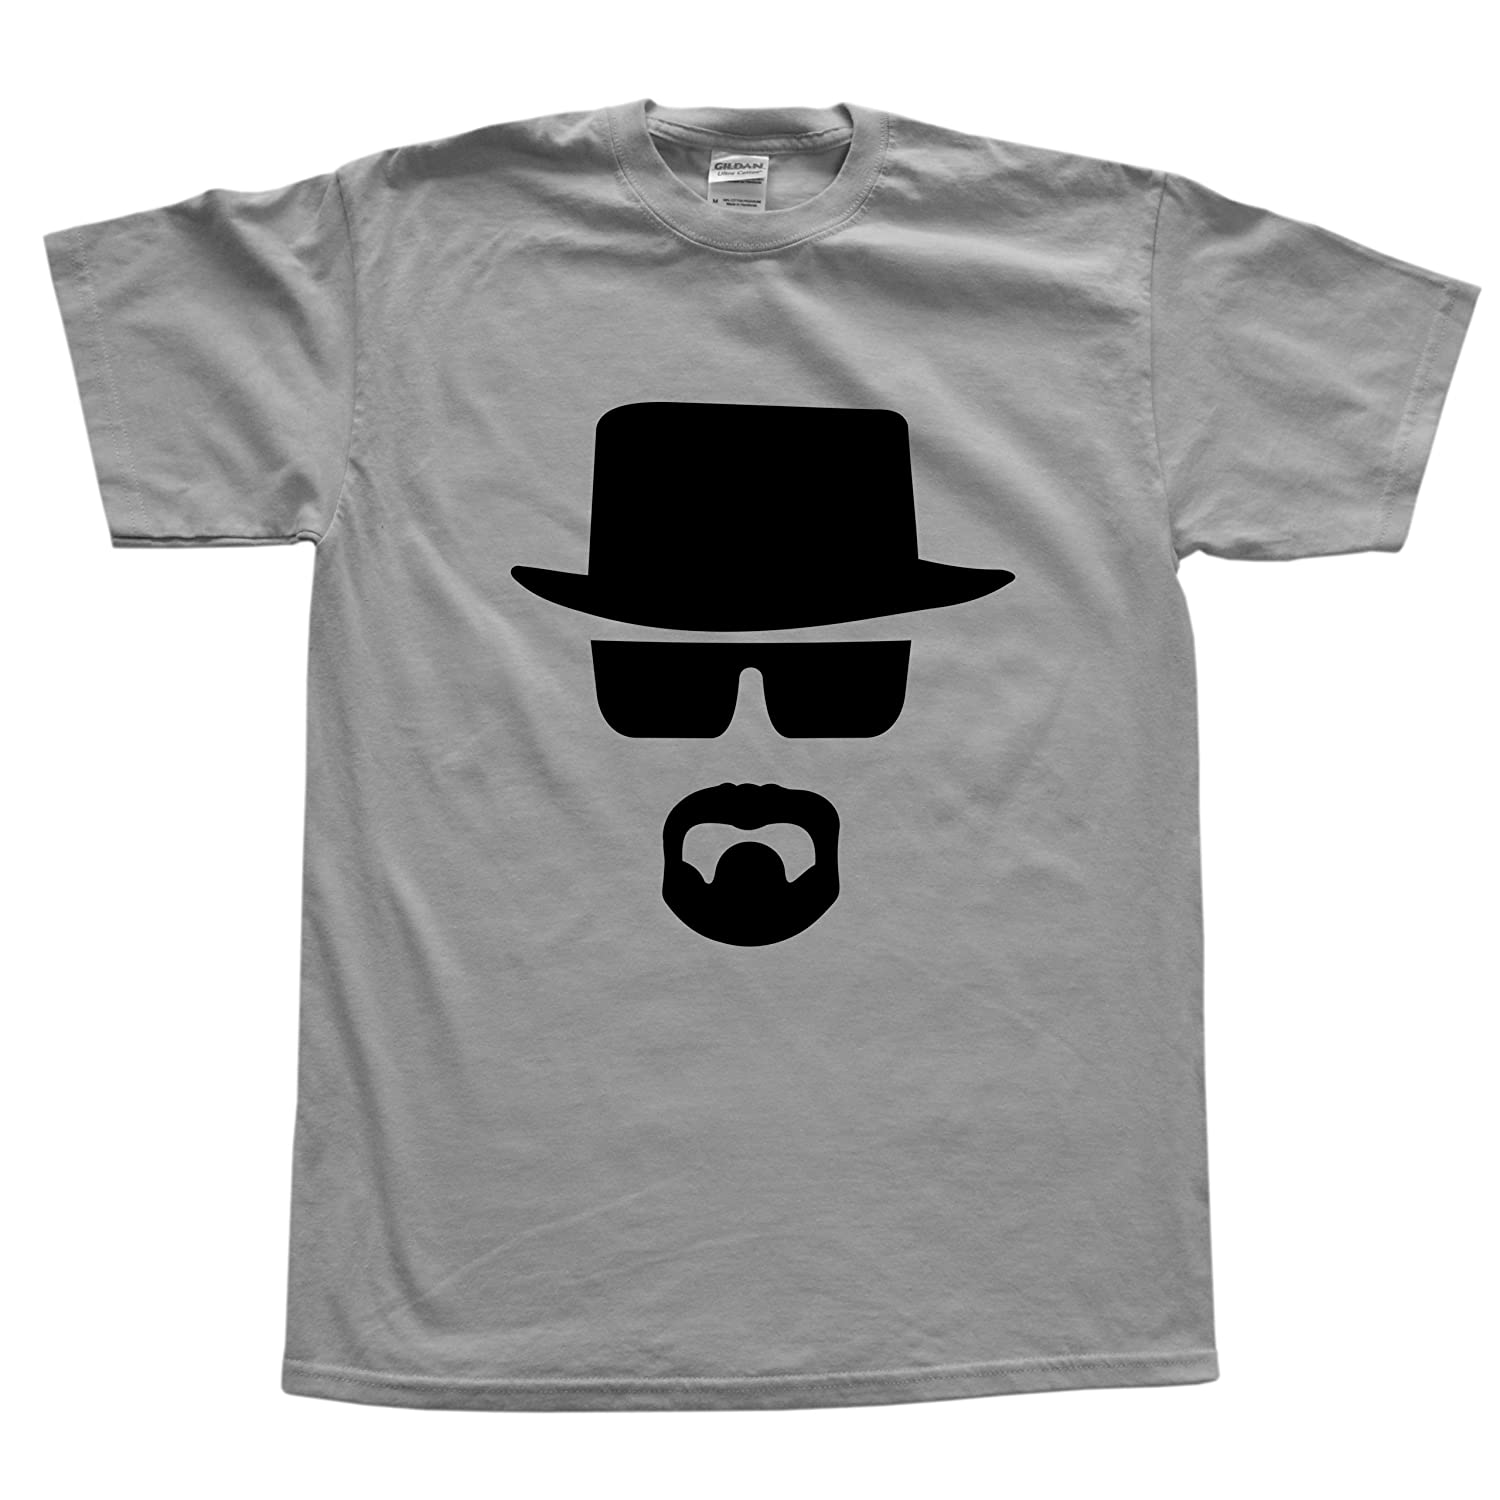 Футболка для фанатов кино Stooble Men's Bad Heisenberg T-Shirt